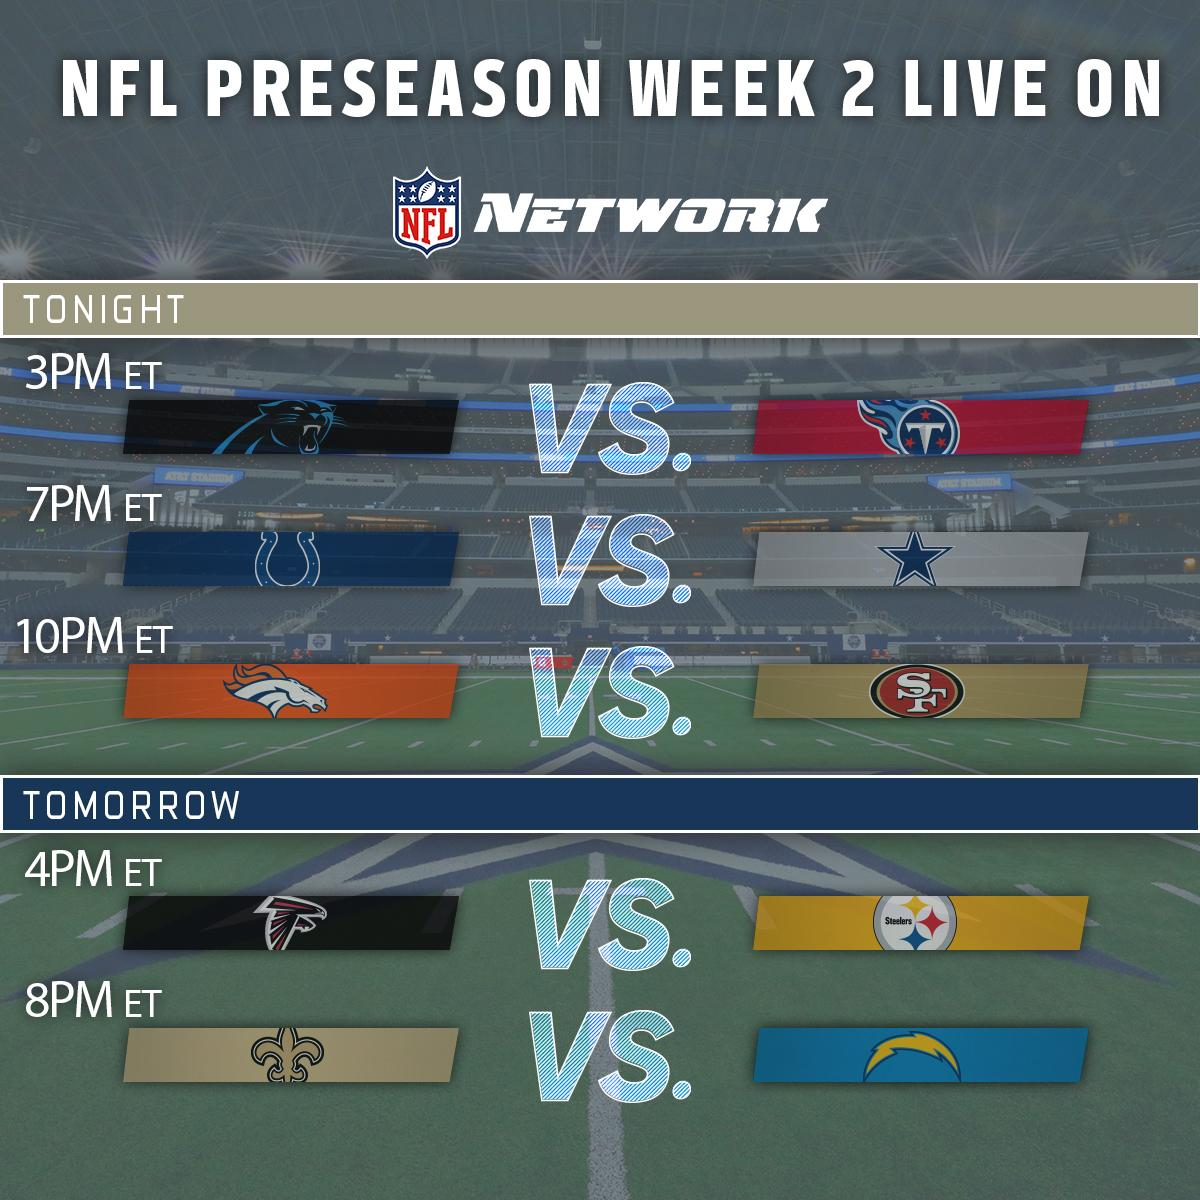 🖐 LIVE NFL Preseason games on NFL Network in 2 days!  Starting with #C...